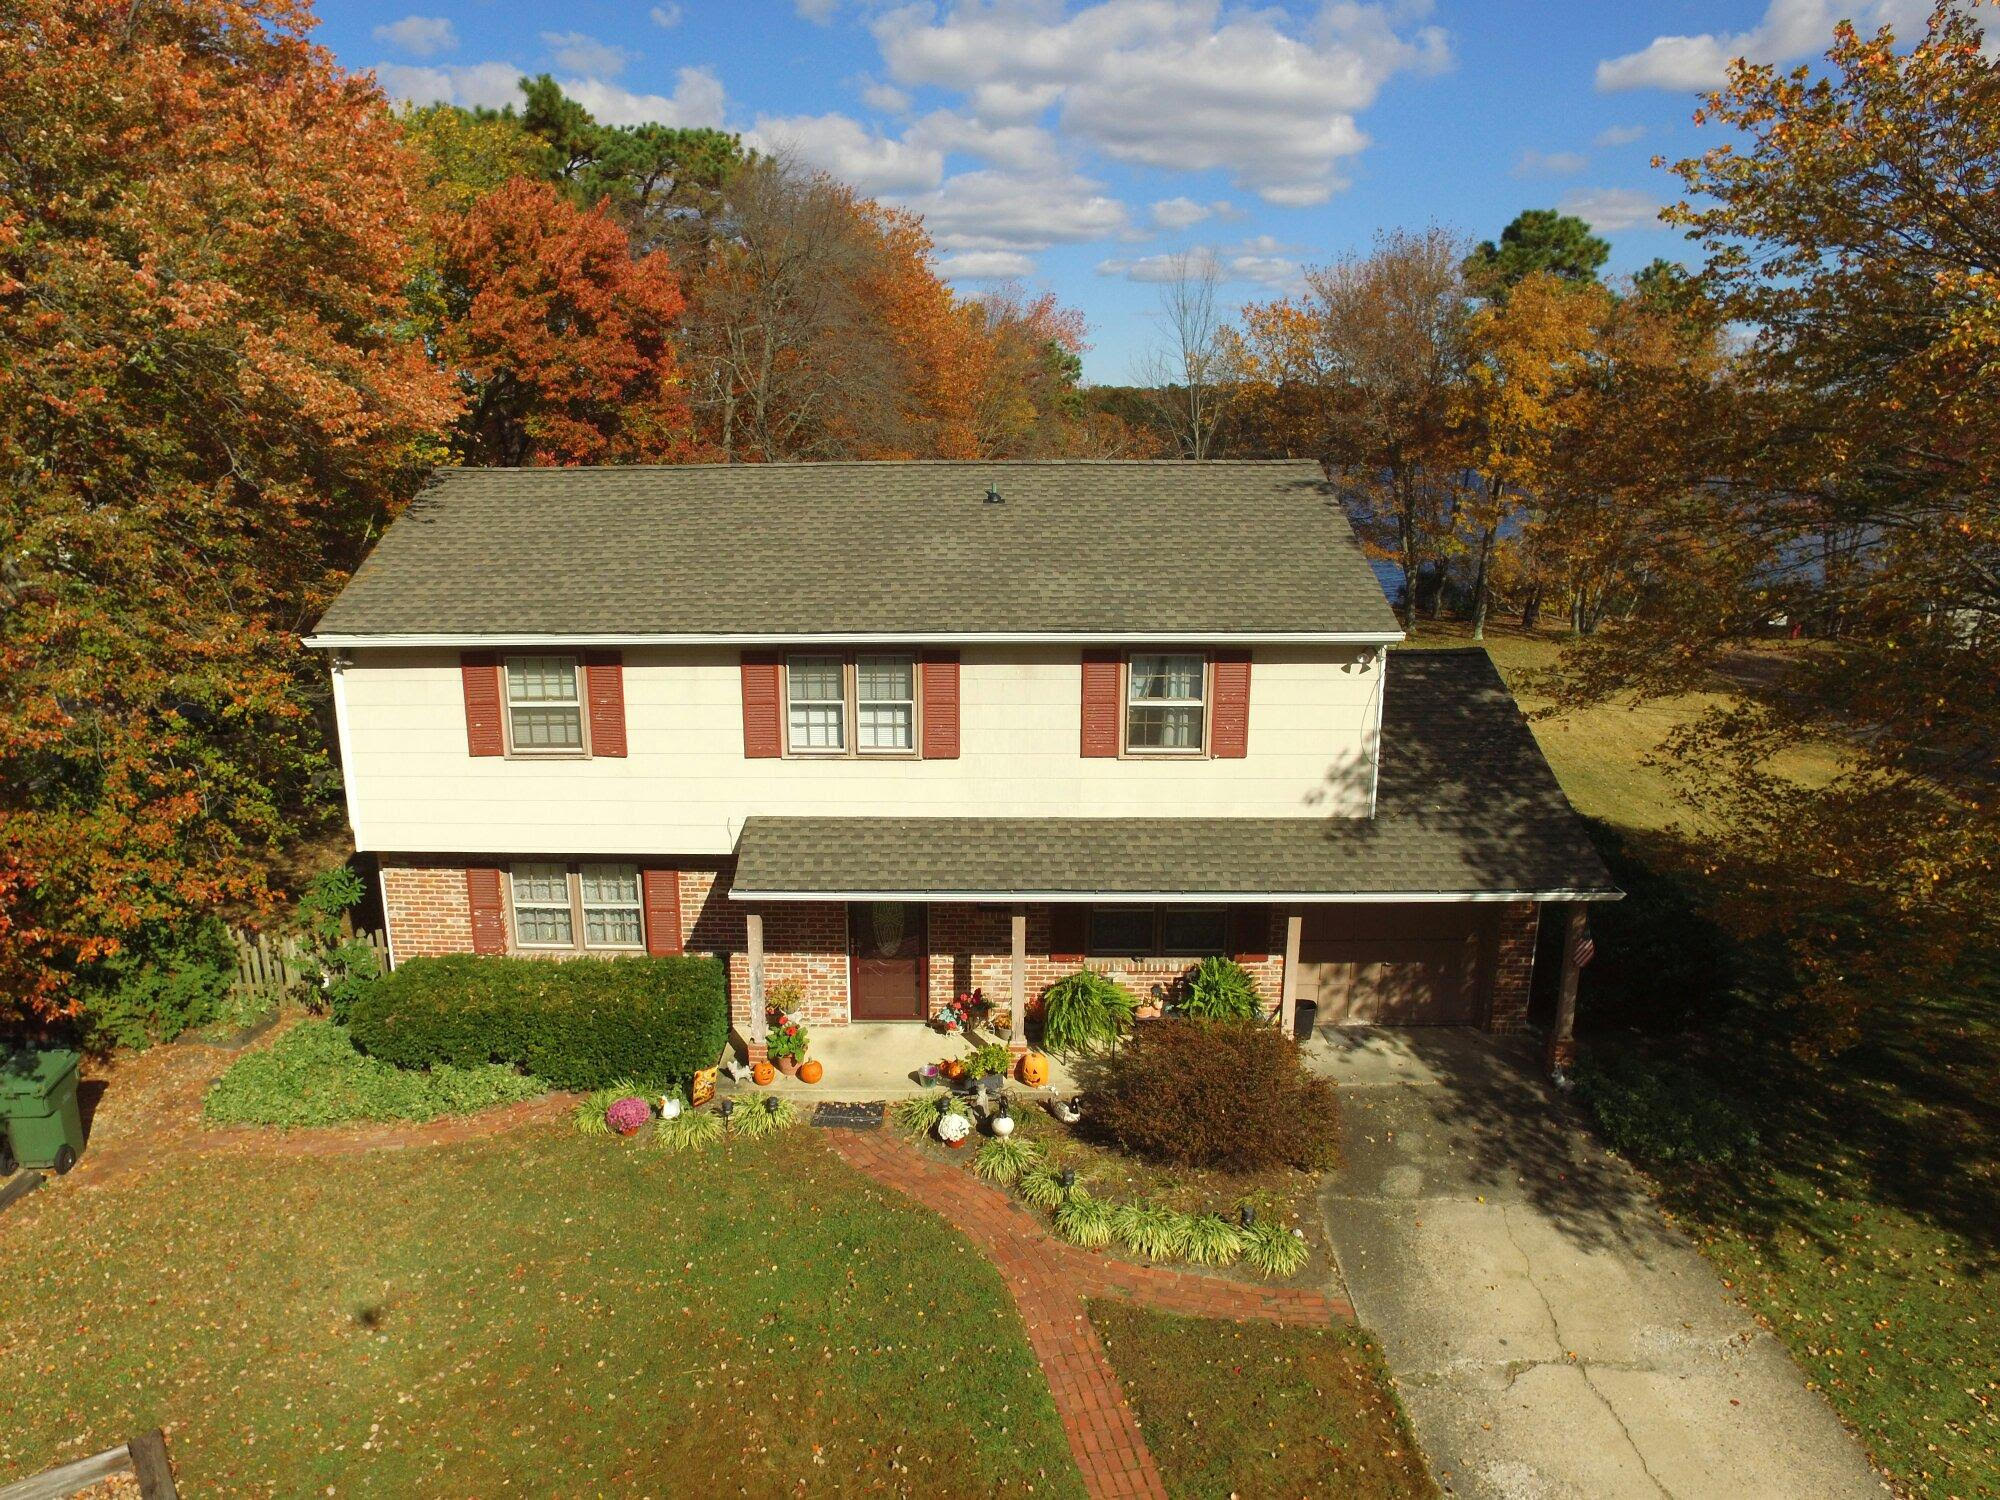 GAF Timberline HD Lifetime Roofing System With Weathered Wood Shingles